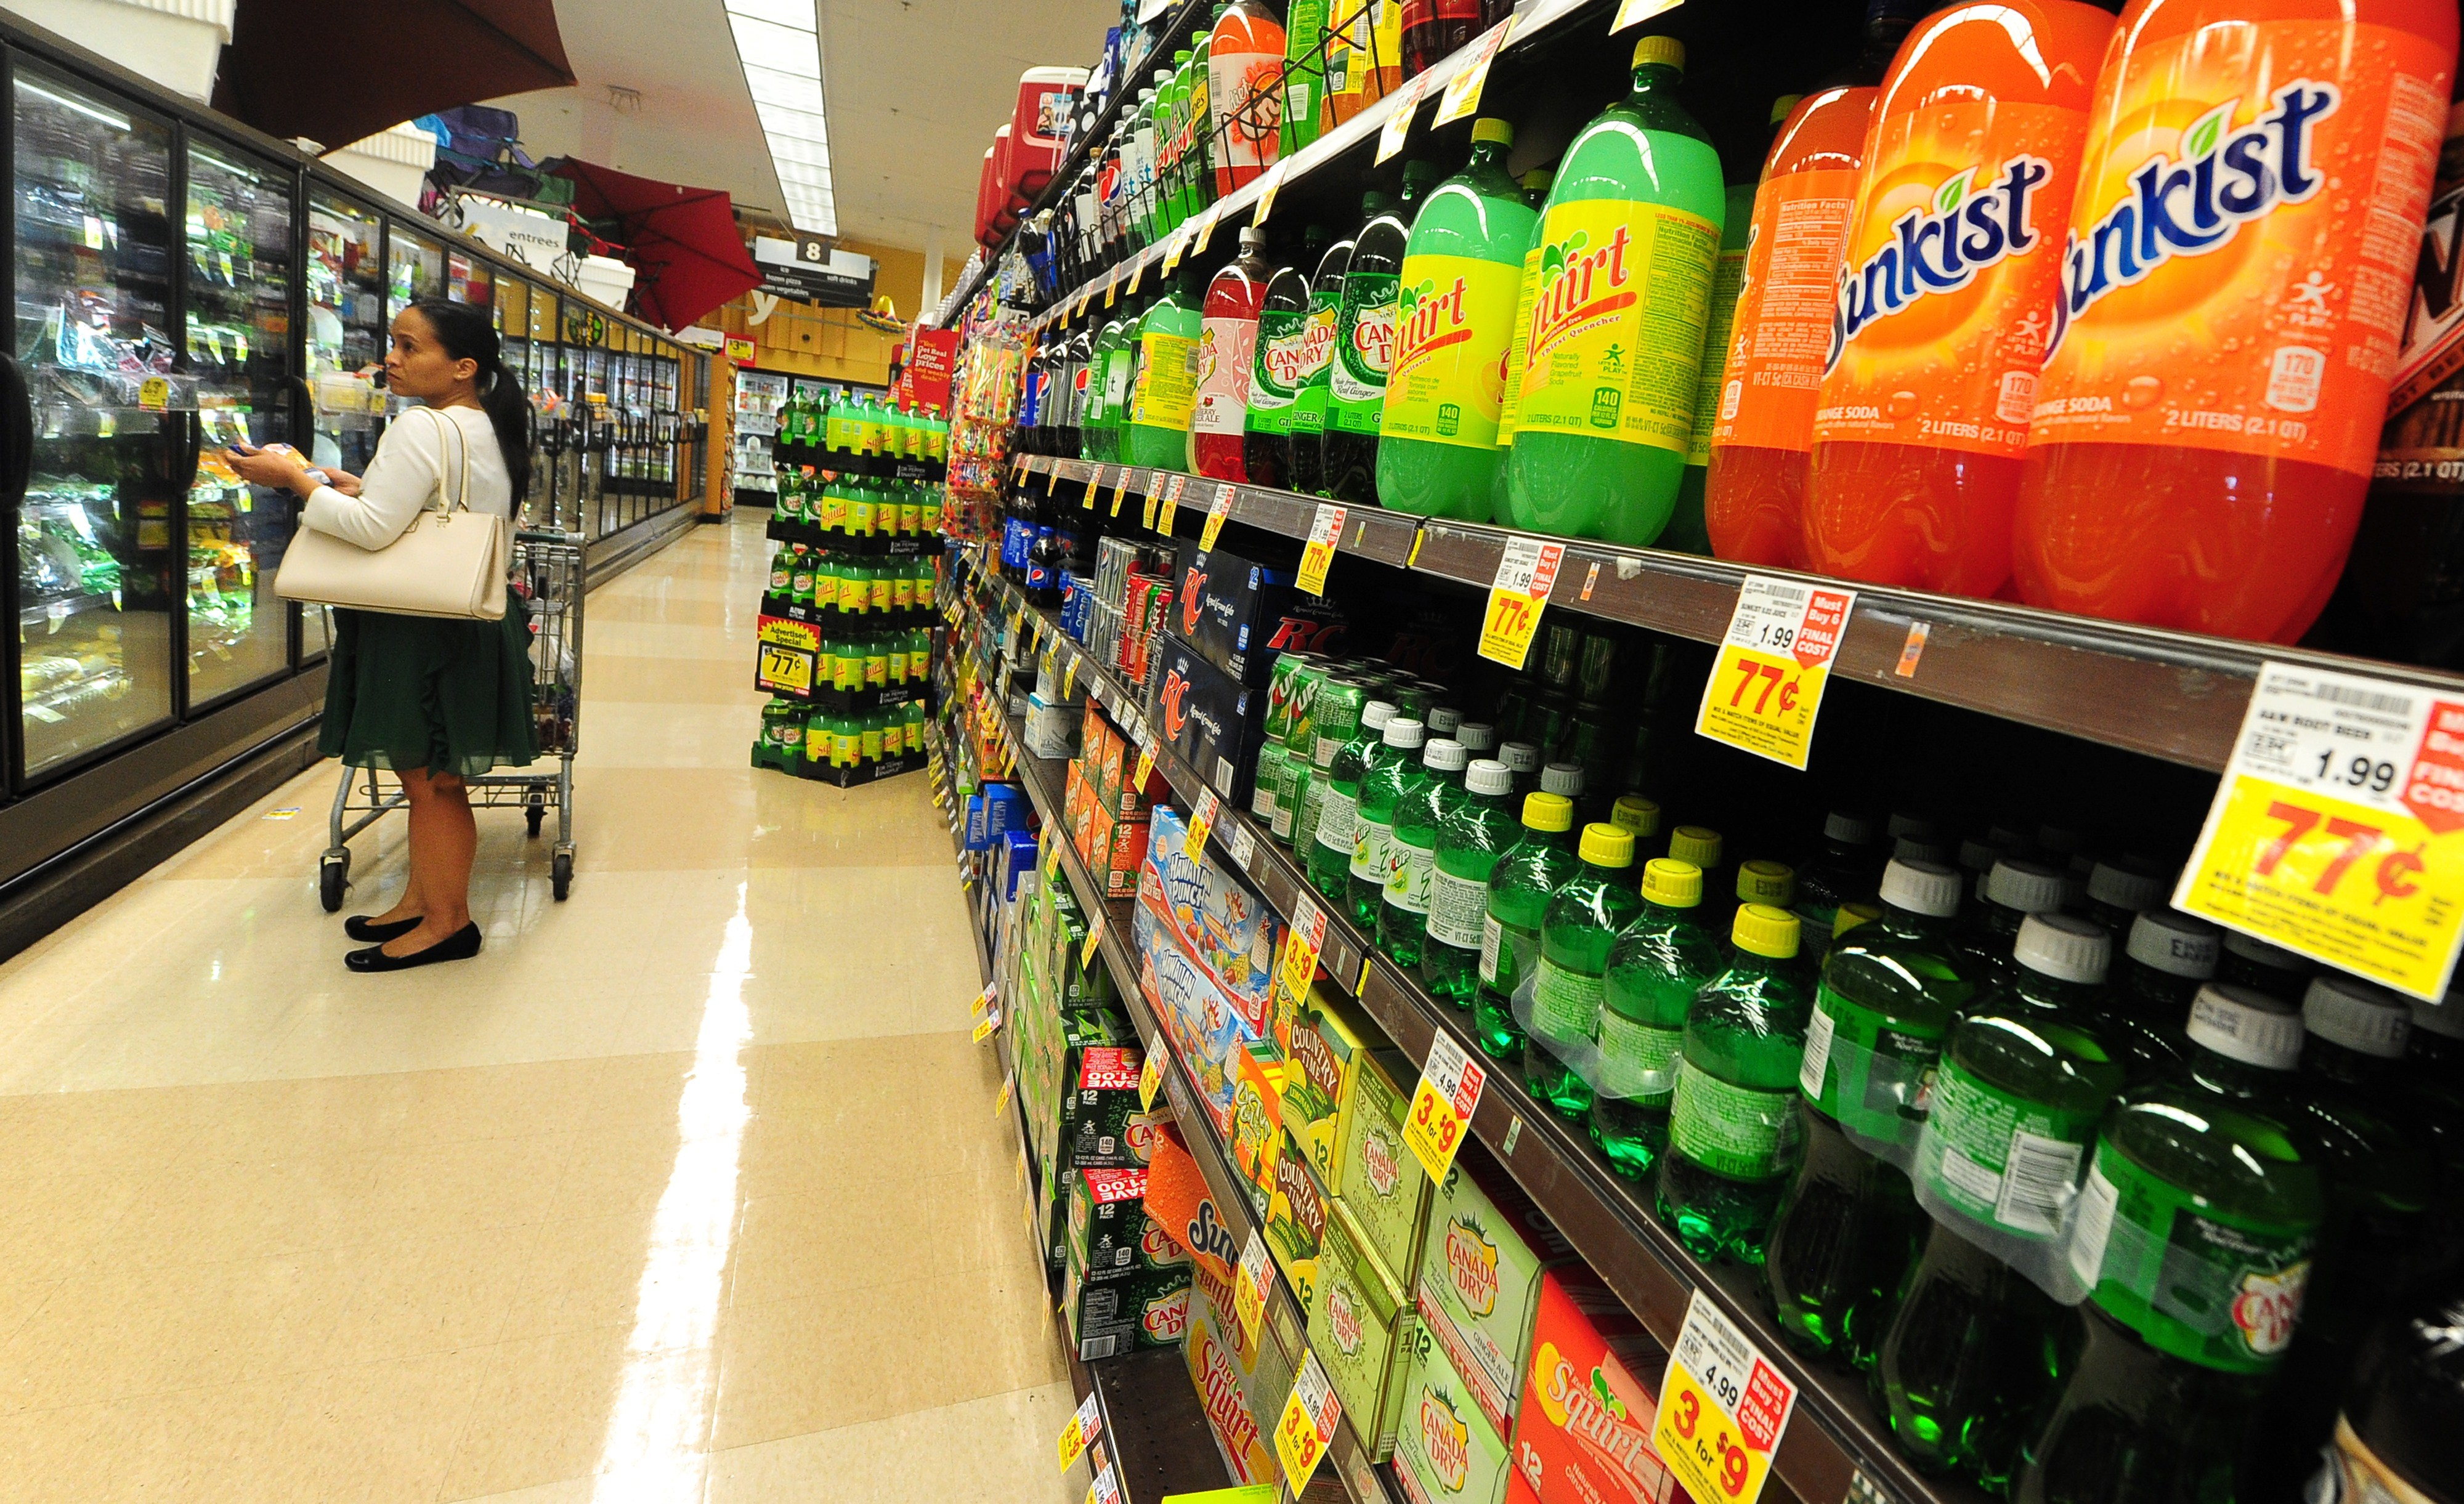 A woman shops for frozen foods on an aisle across from sodas and other sugary drinks for sale at a superrmarket in Monterey Park, California on June 18, 2014.